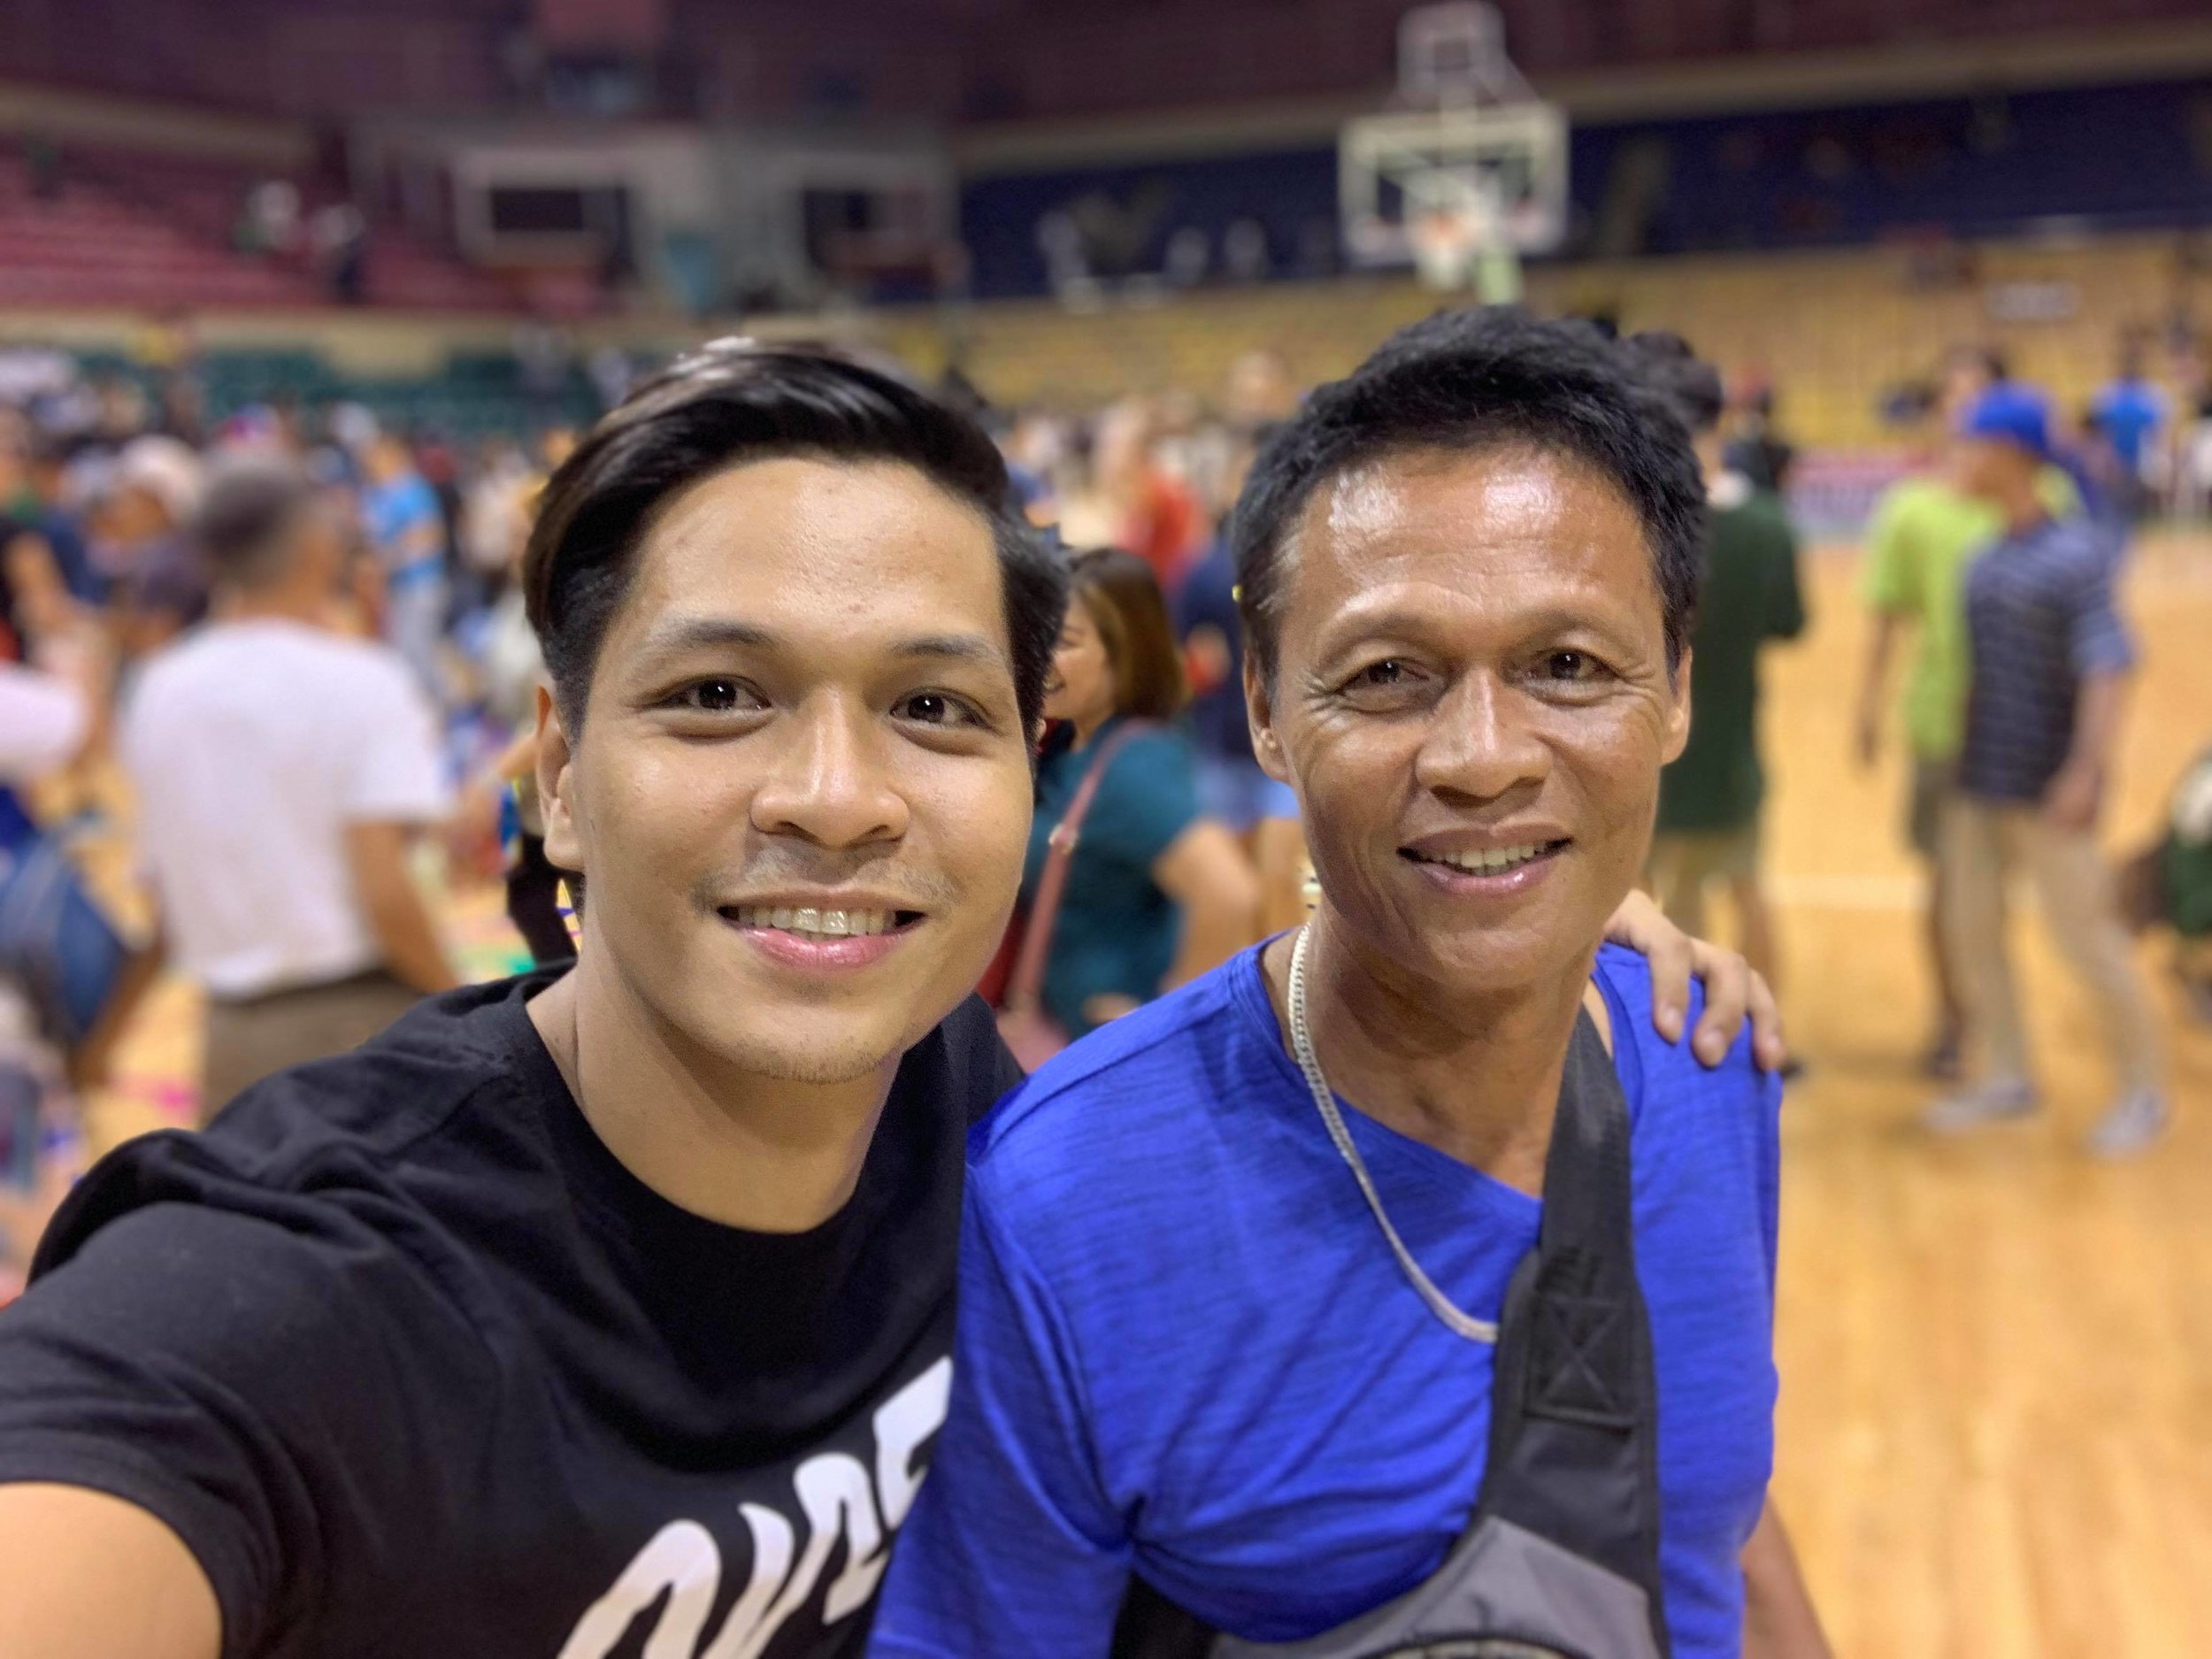 Mark Sumaylo takes his father, Antonio, to a basketball game which is a shared interest of theirs. The two would play basketball as Mark was growing up.